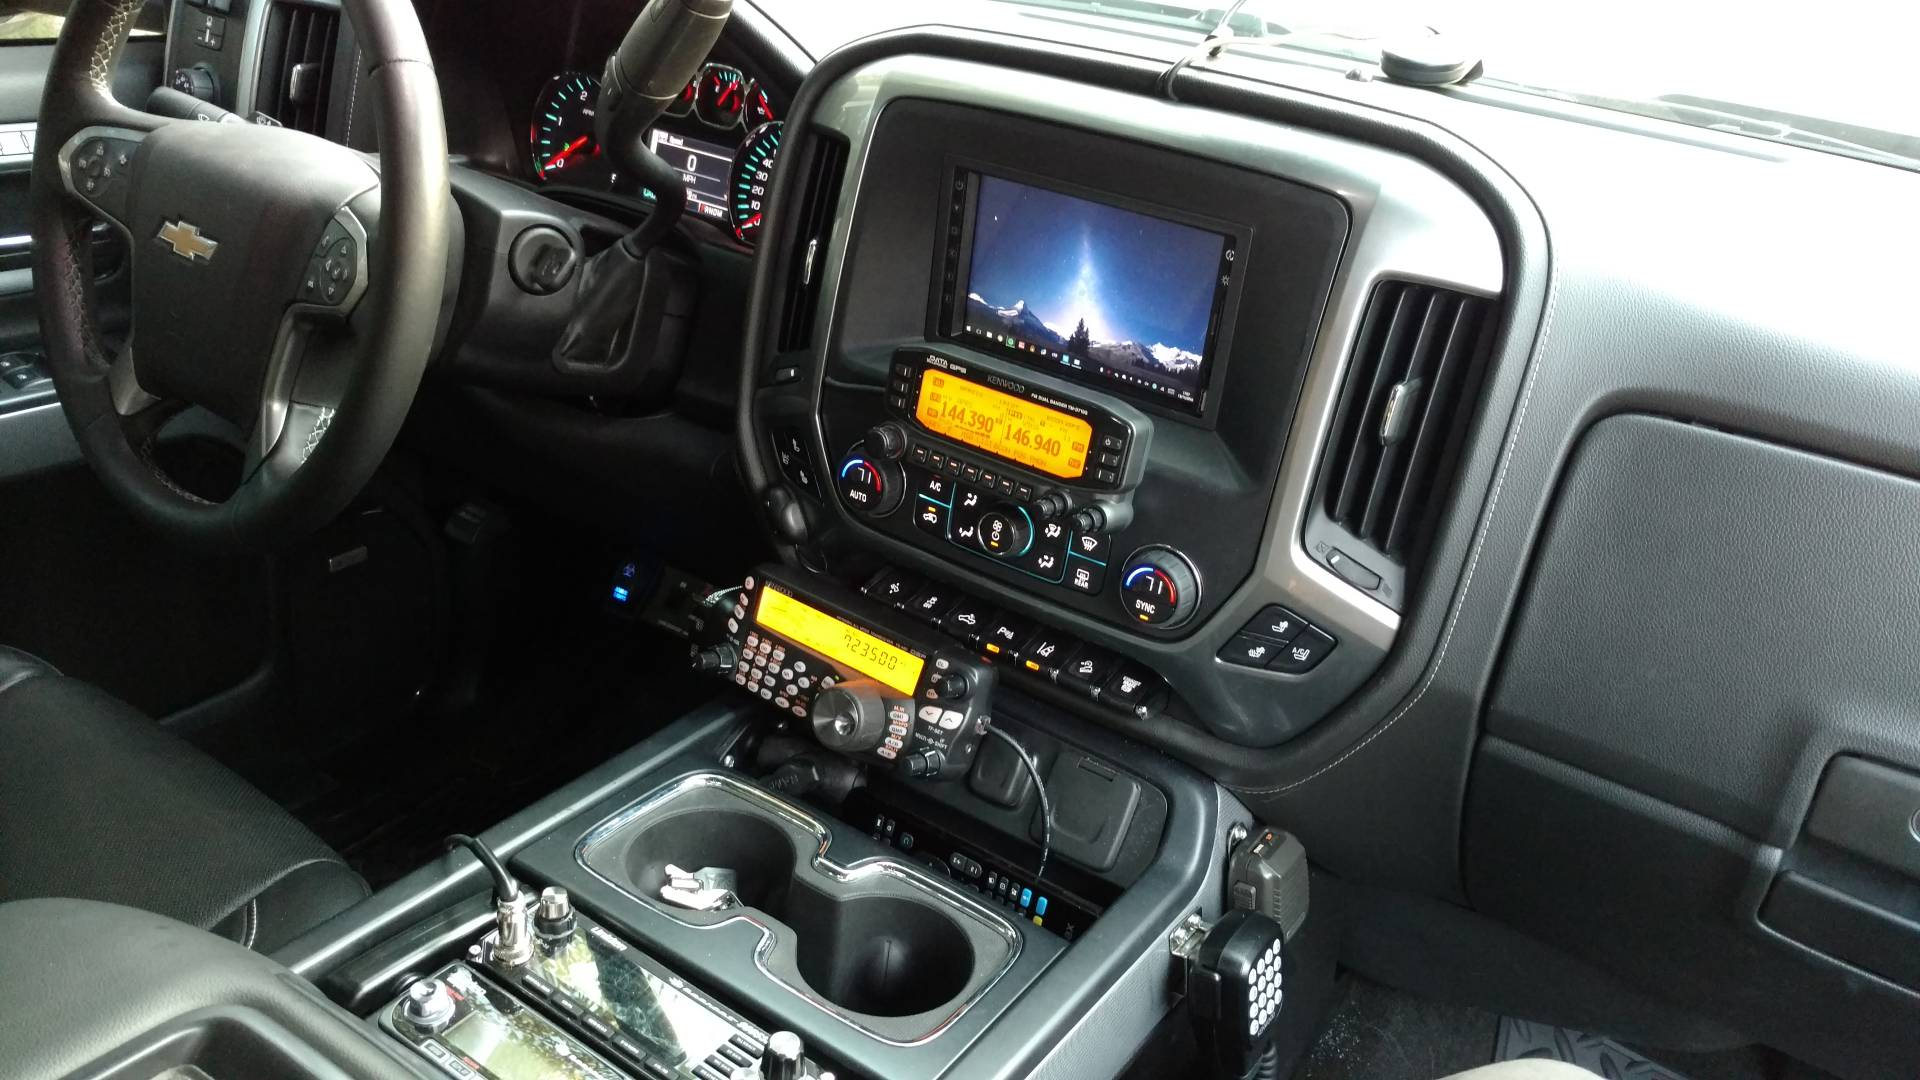 Alpine x110 slv alpine makes a head unit specific to our trucks called the x110 slv to be honest it s what i wanted before i went with the carpc